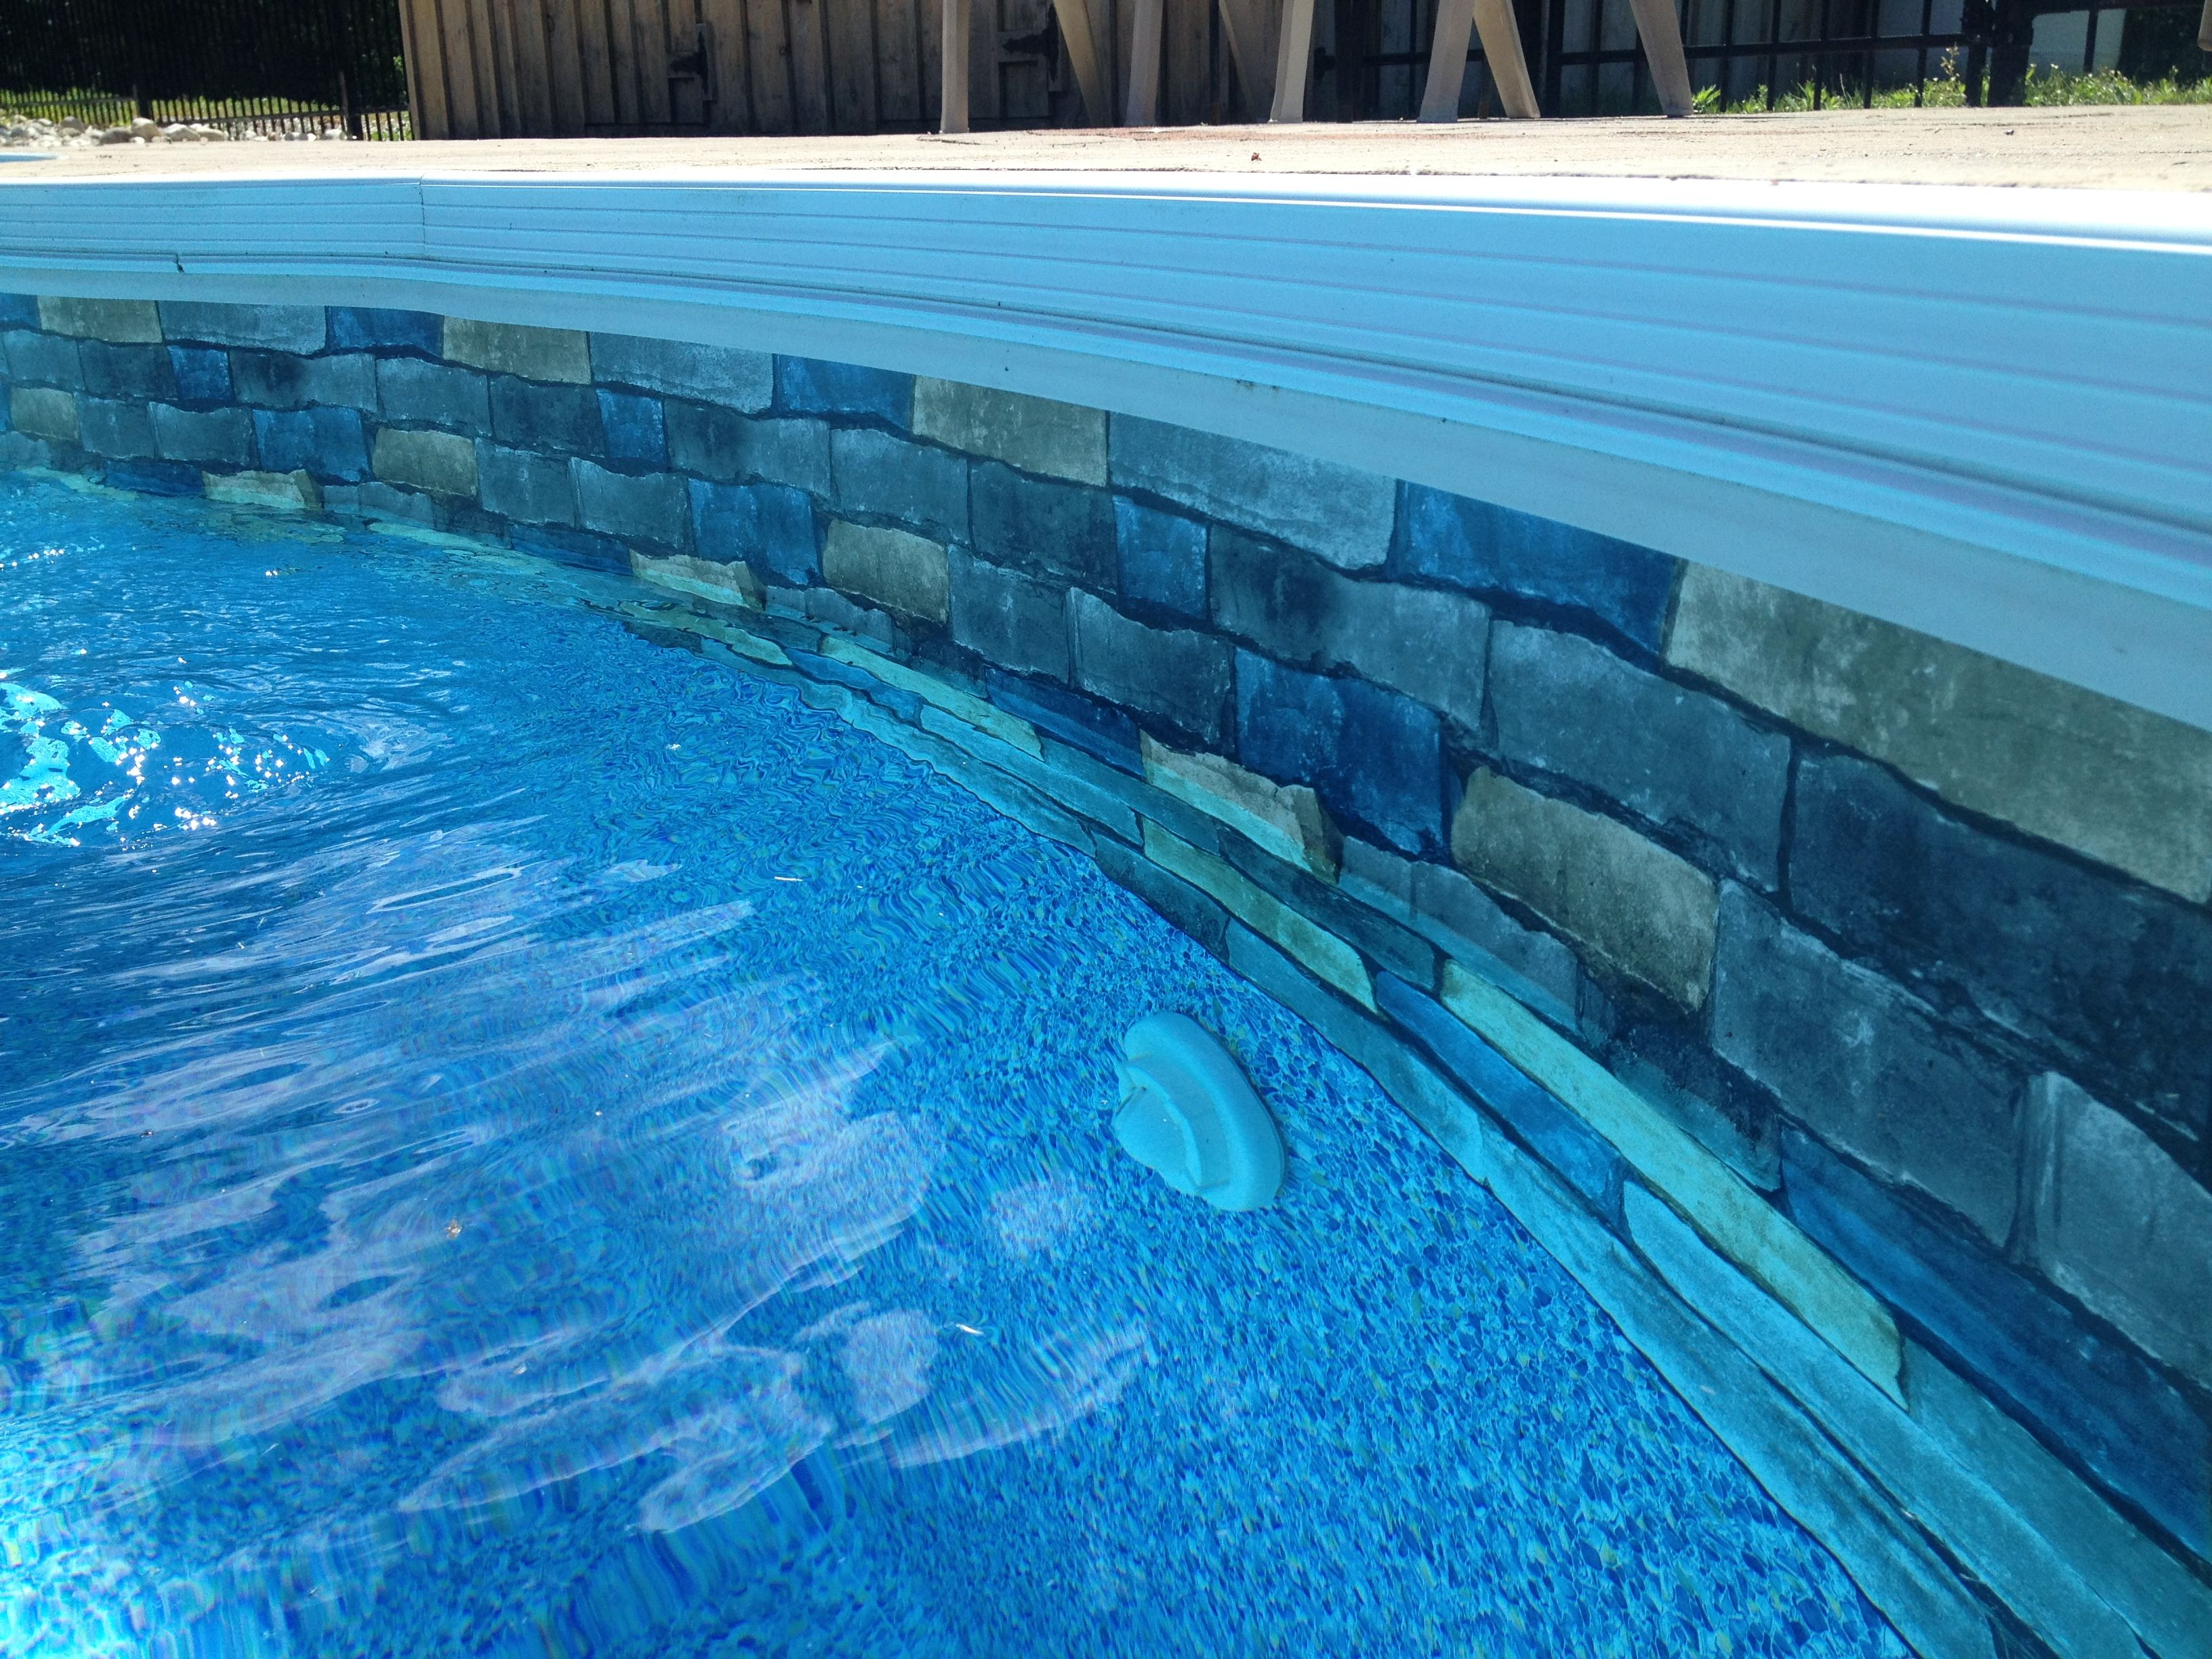 Brick pool liner pool liners pinterest pool liners for Swimming pool liners